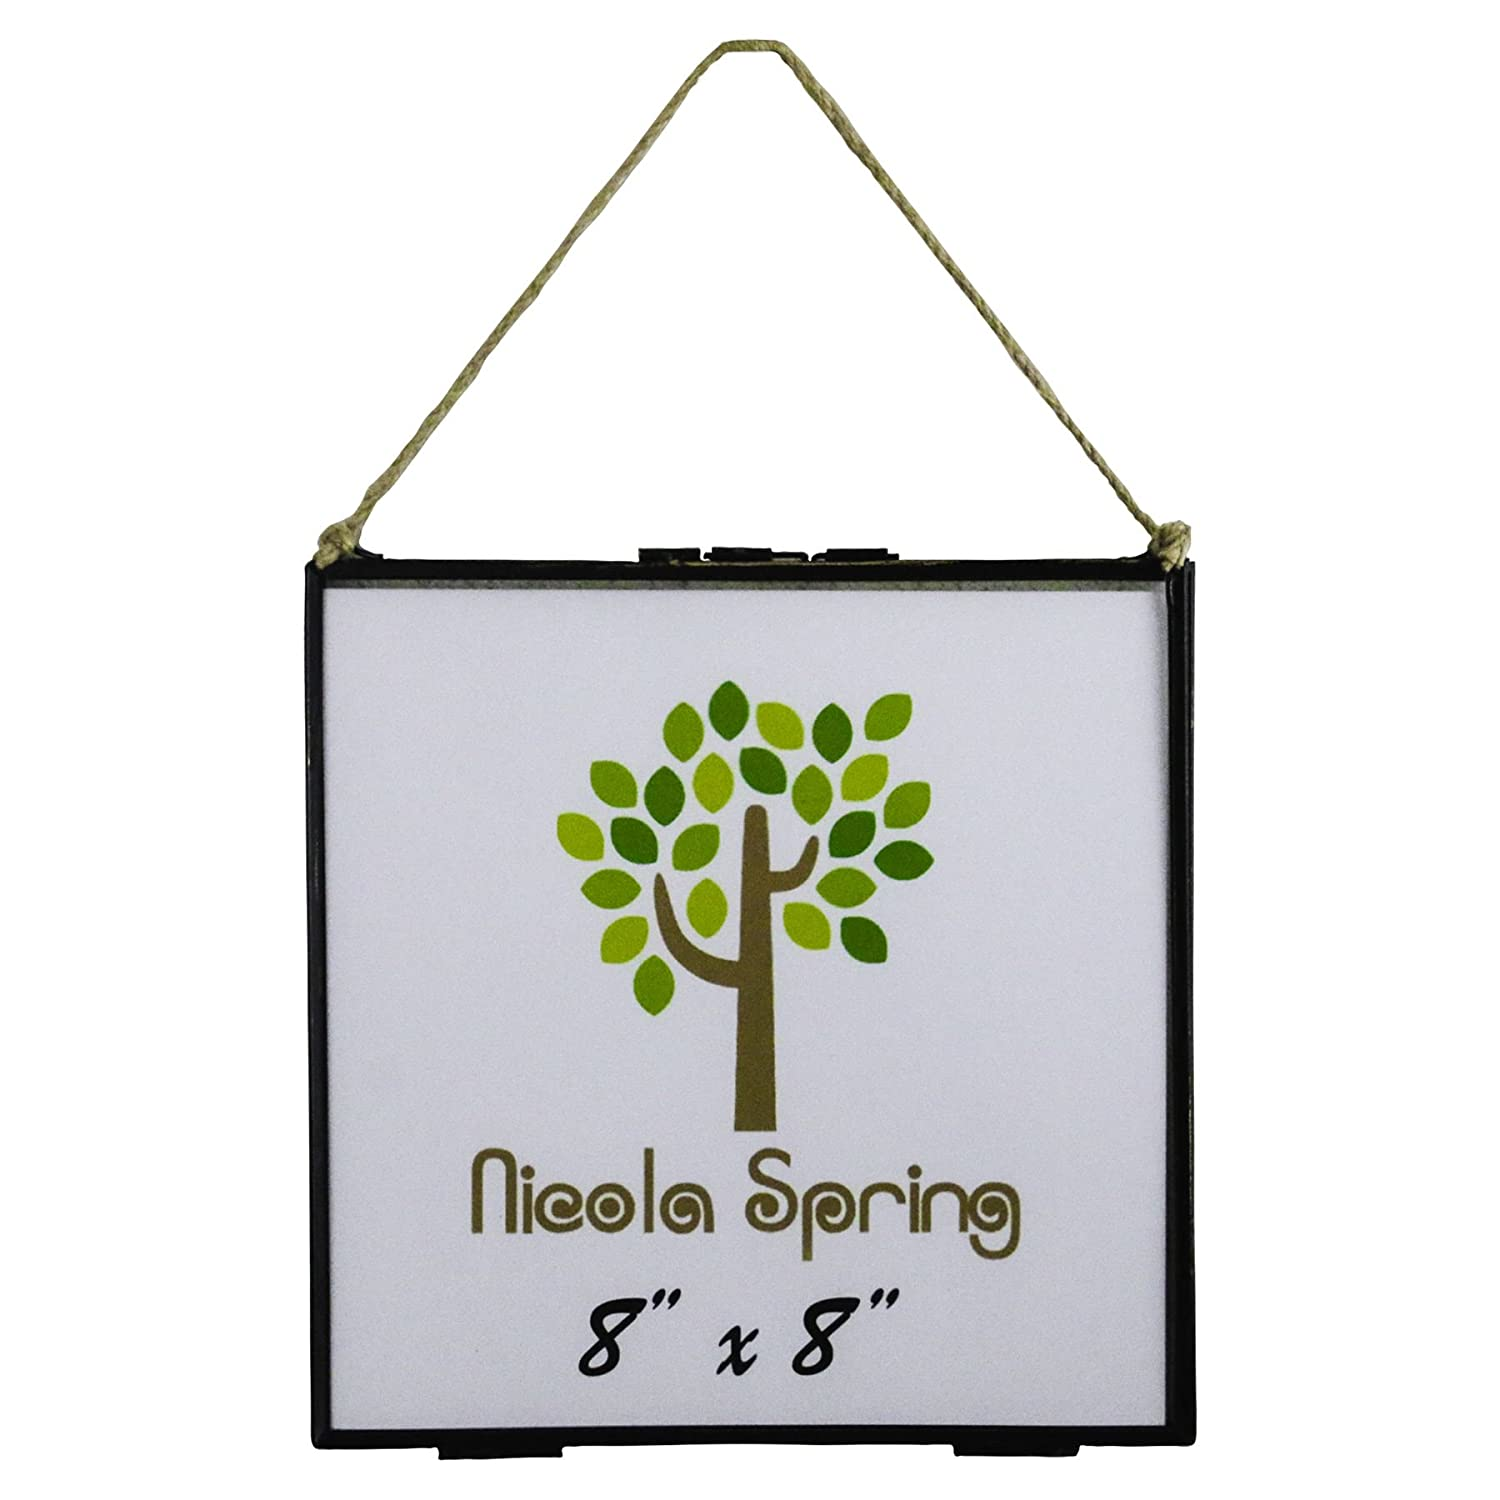 8x8 Photos Nicola Spring Glass Photo Frame with Vintage Style Hanging Rope